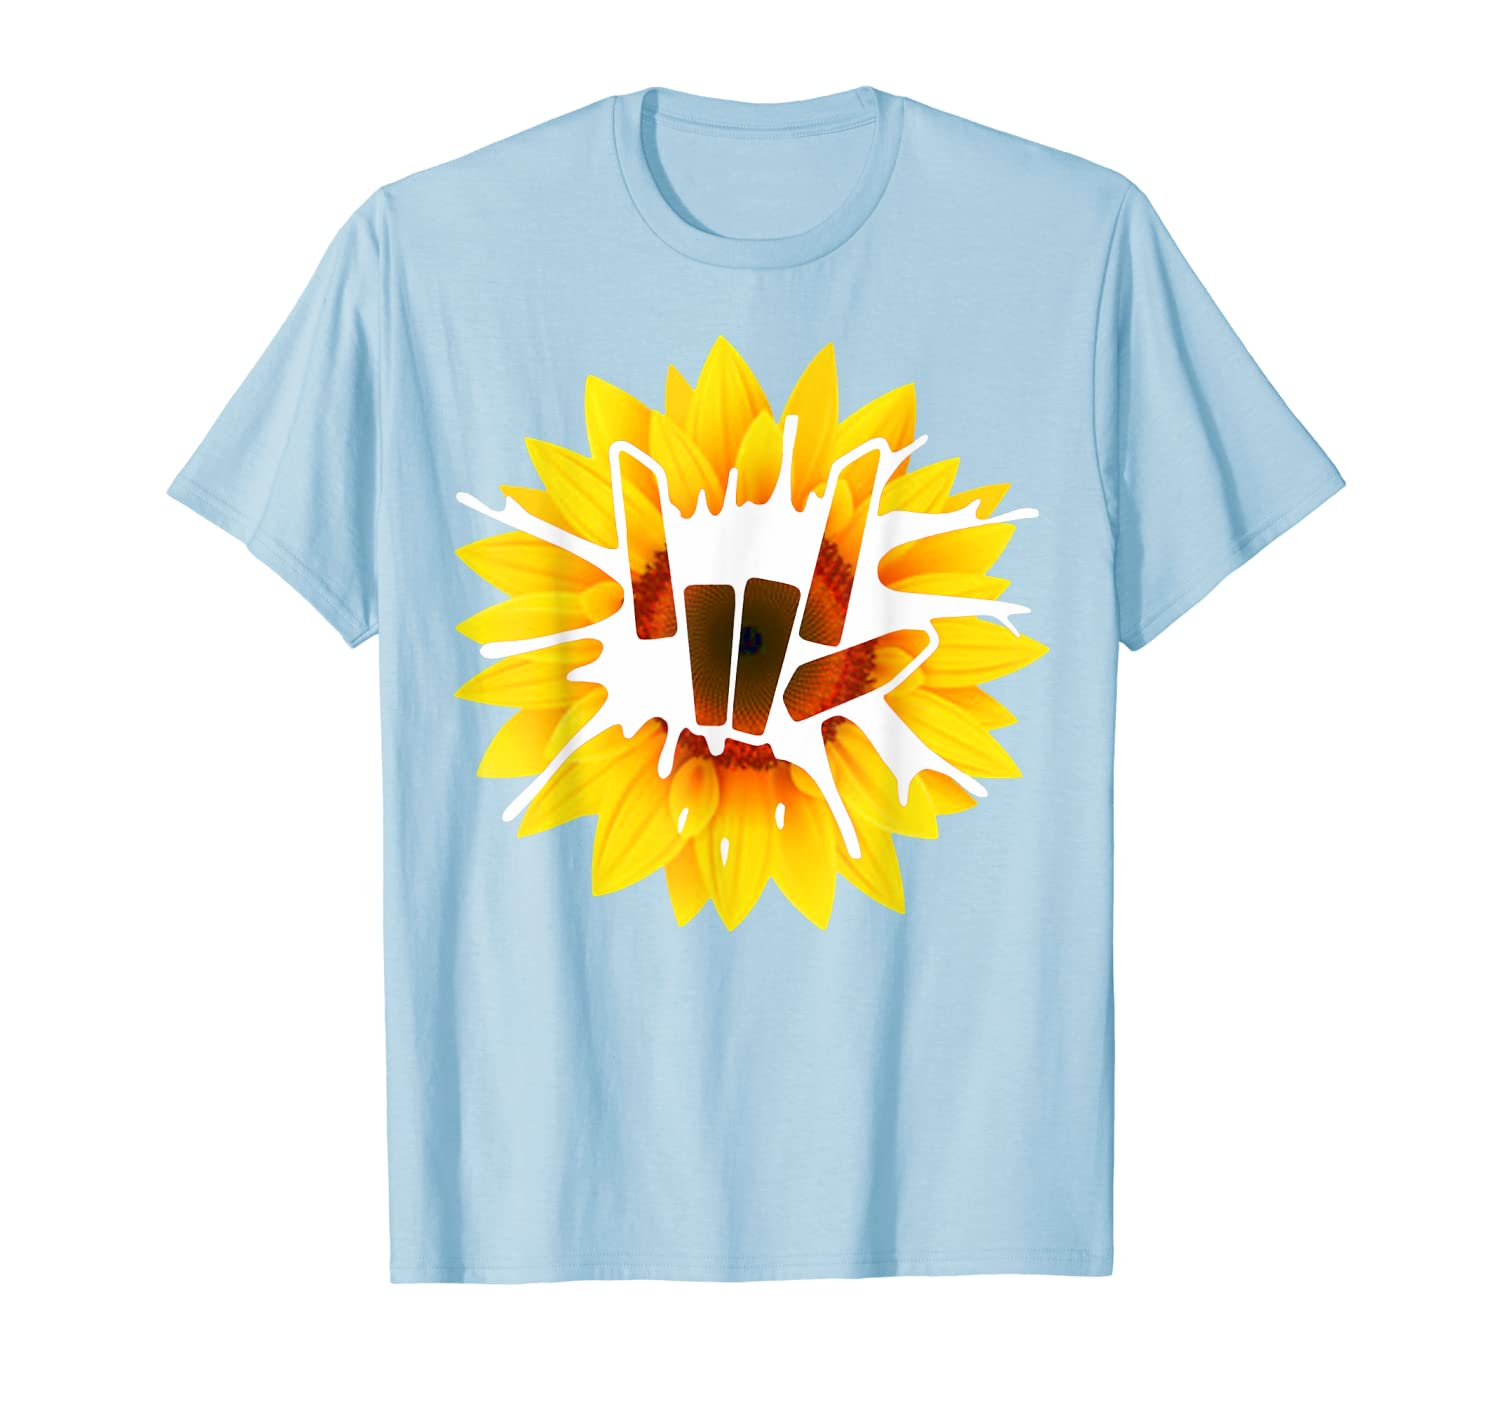 Share Love With Sunflower For And Shirts